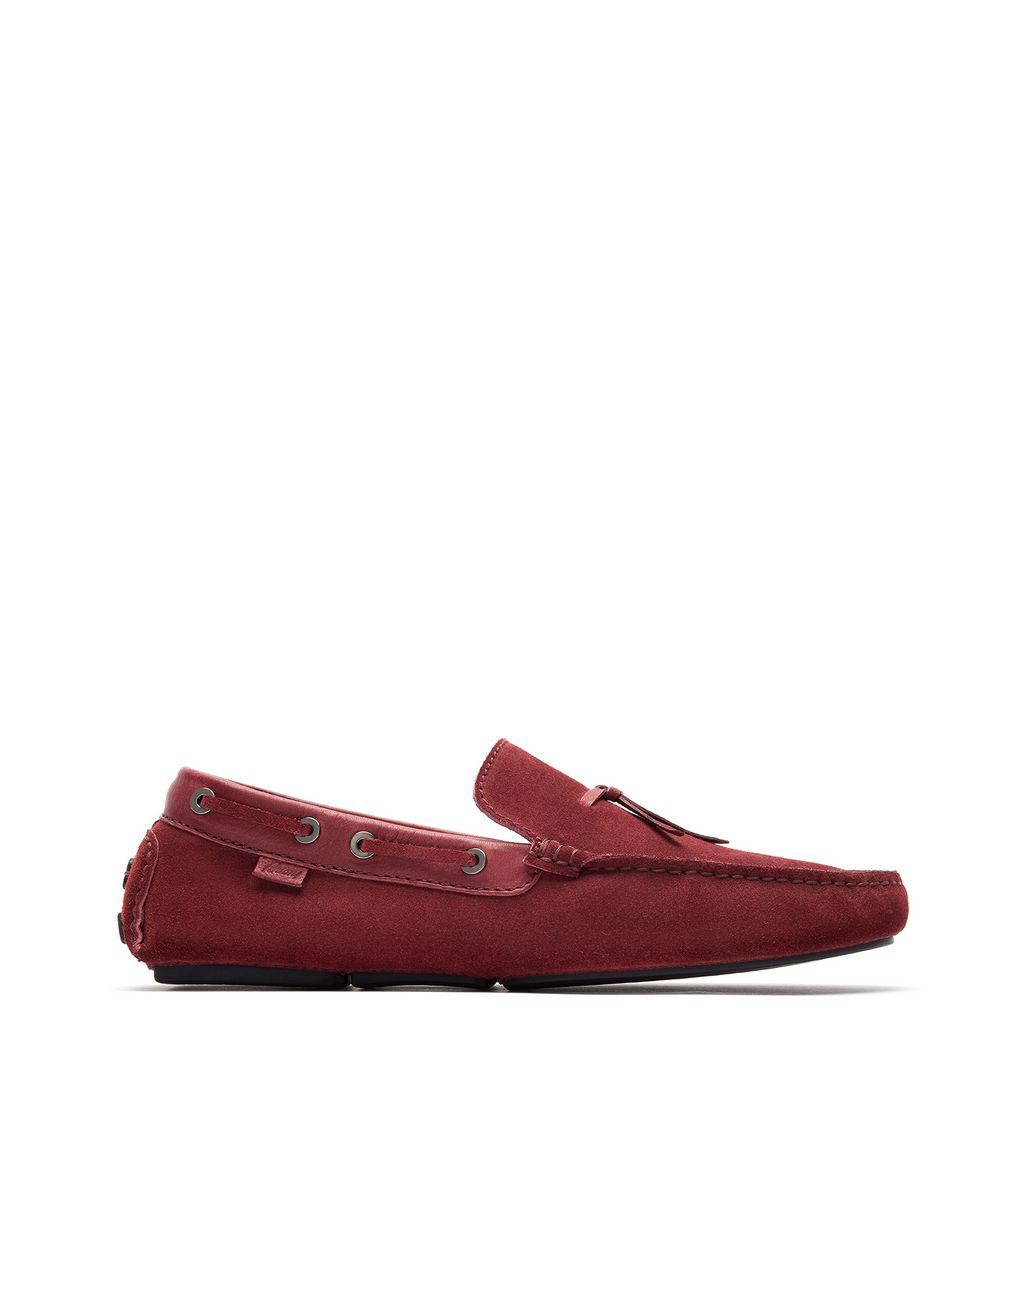 BRIONI Bordeaux Unlined Calf Suede Loafer Loafers U f